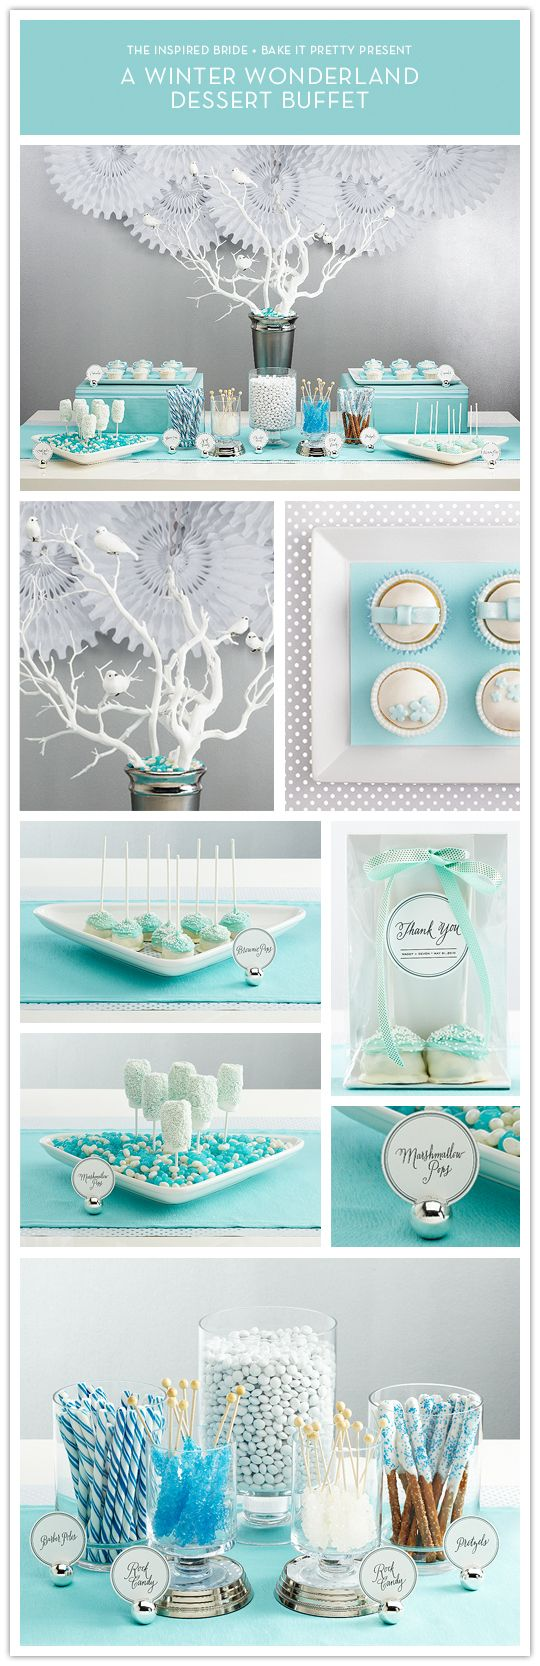 Love the little white doves on the white tree branches for bridal shower